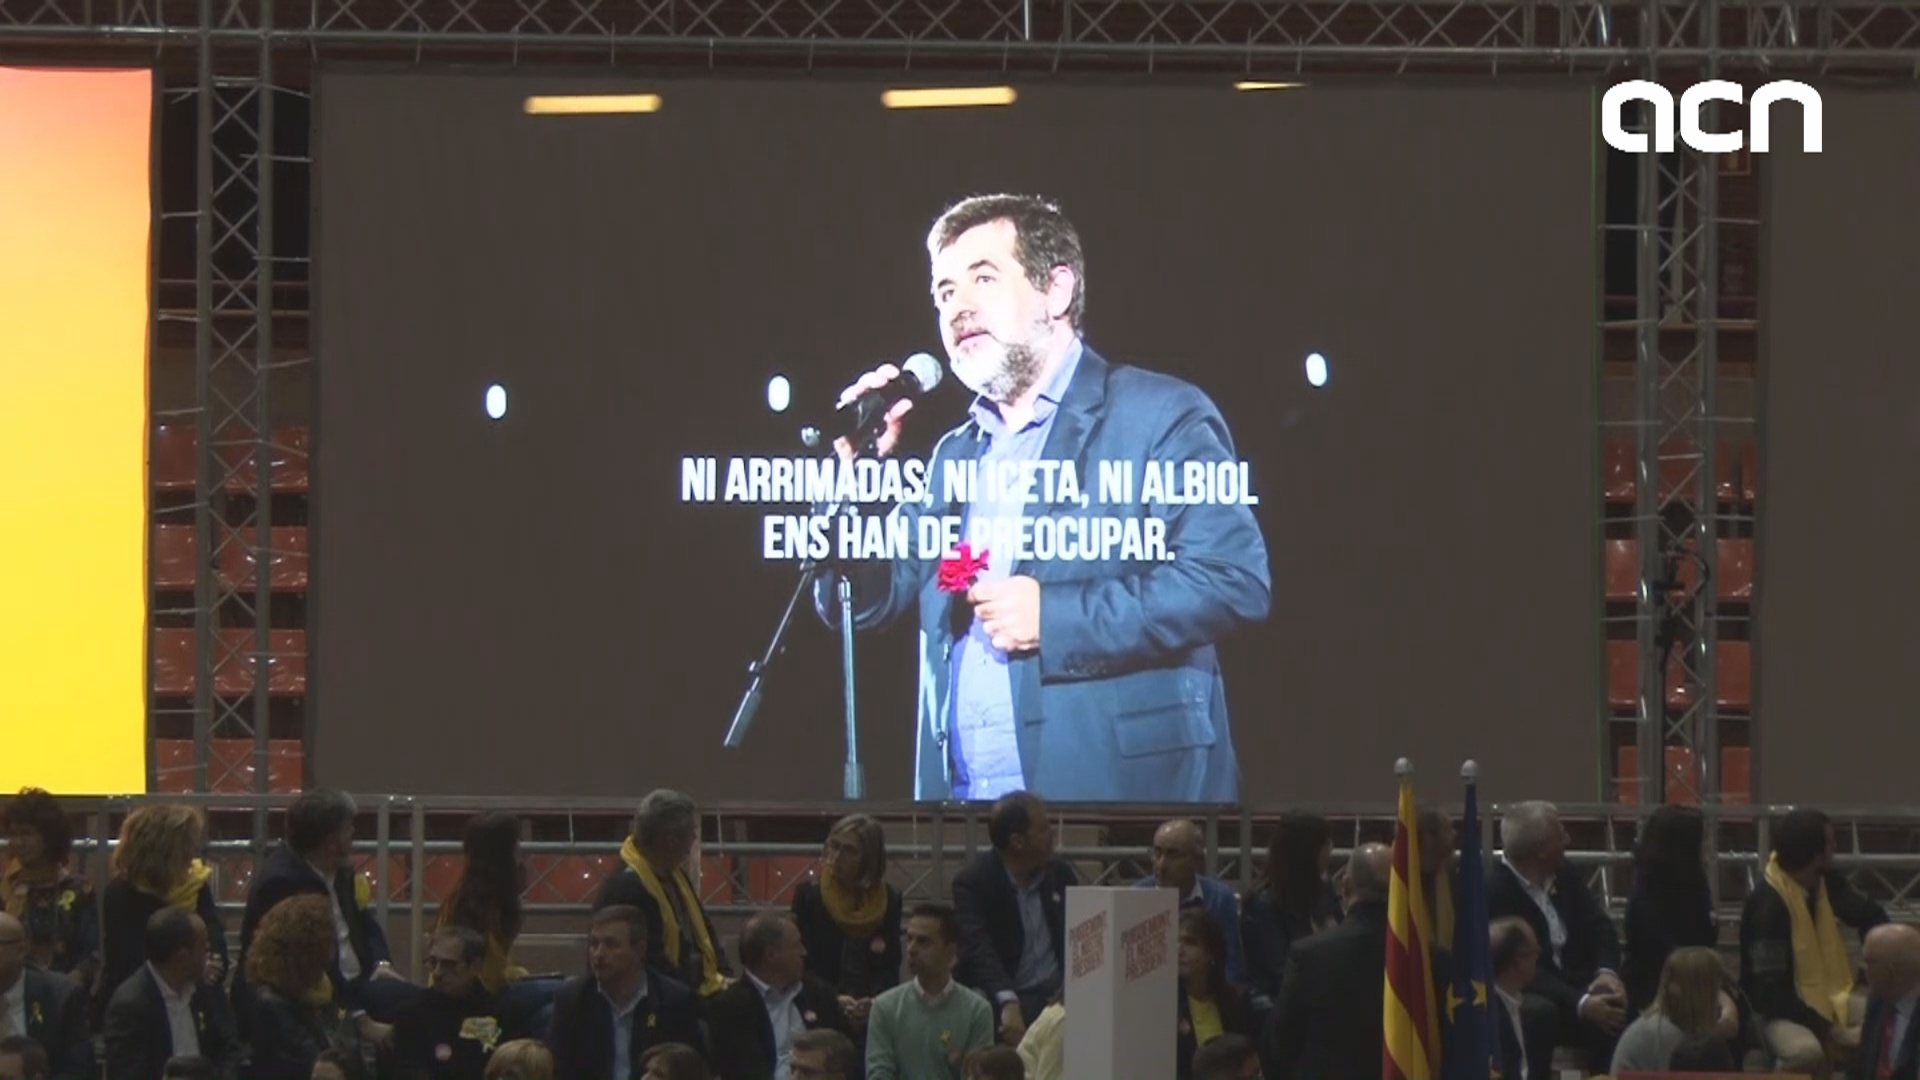 Jordi Sànchez: the grassroots activist turned presidential candidate